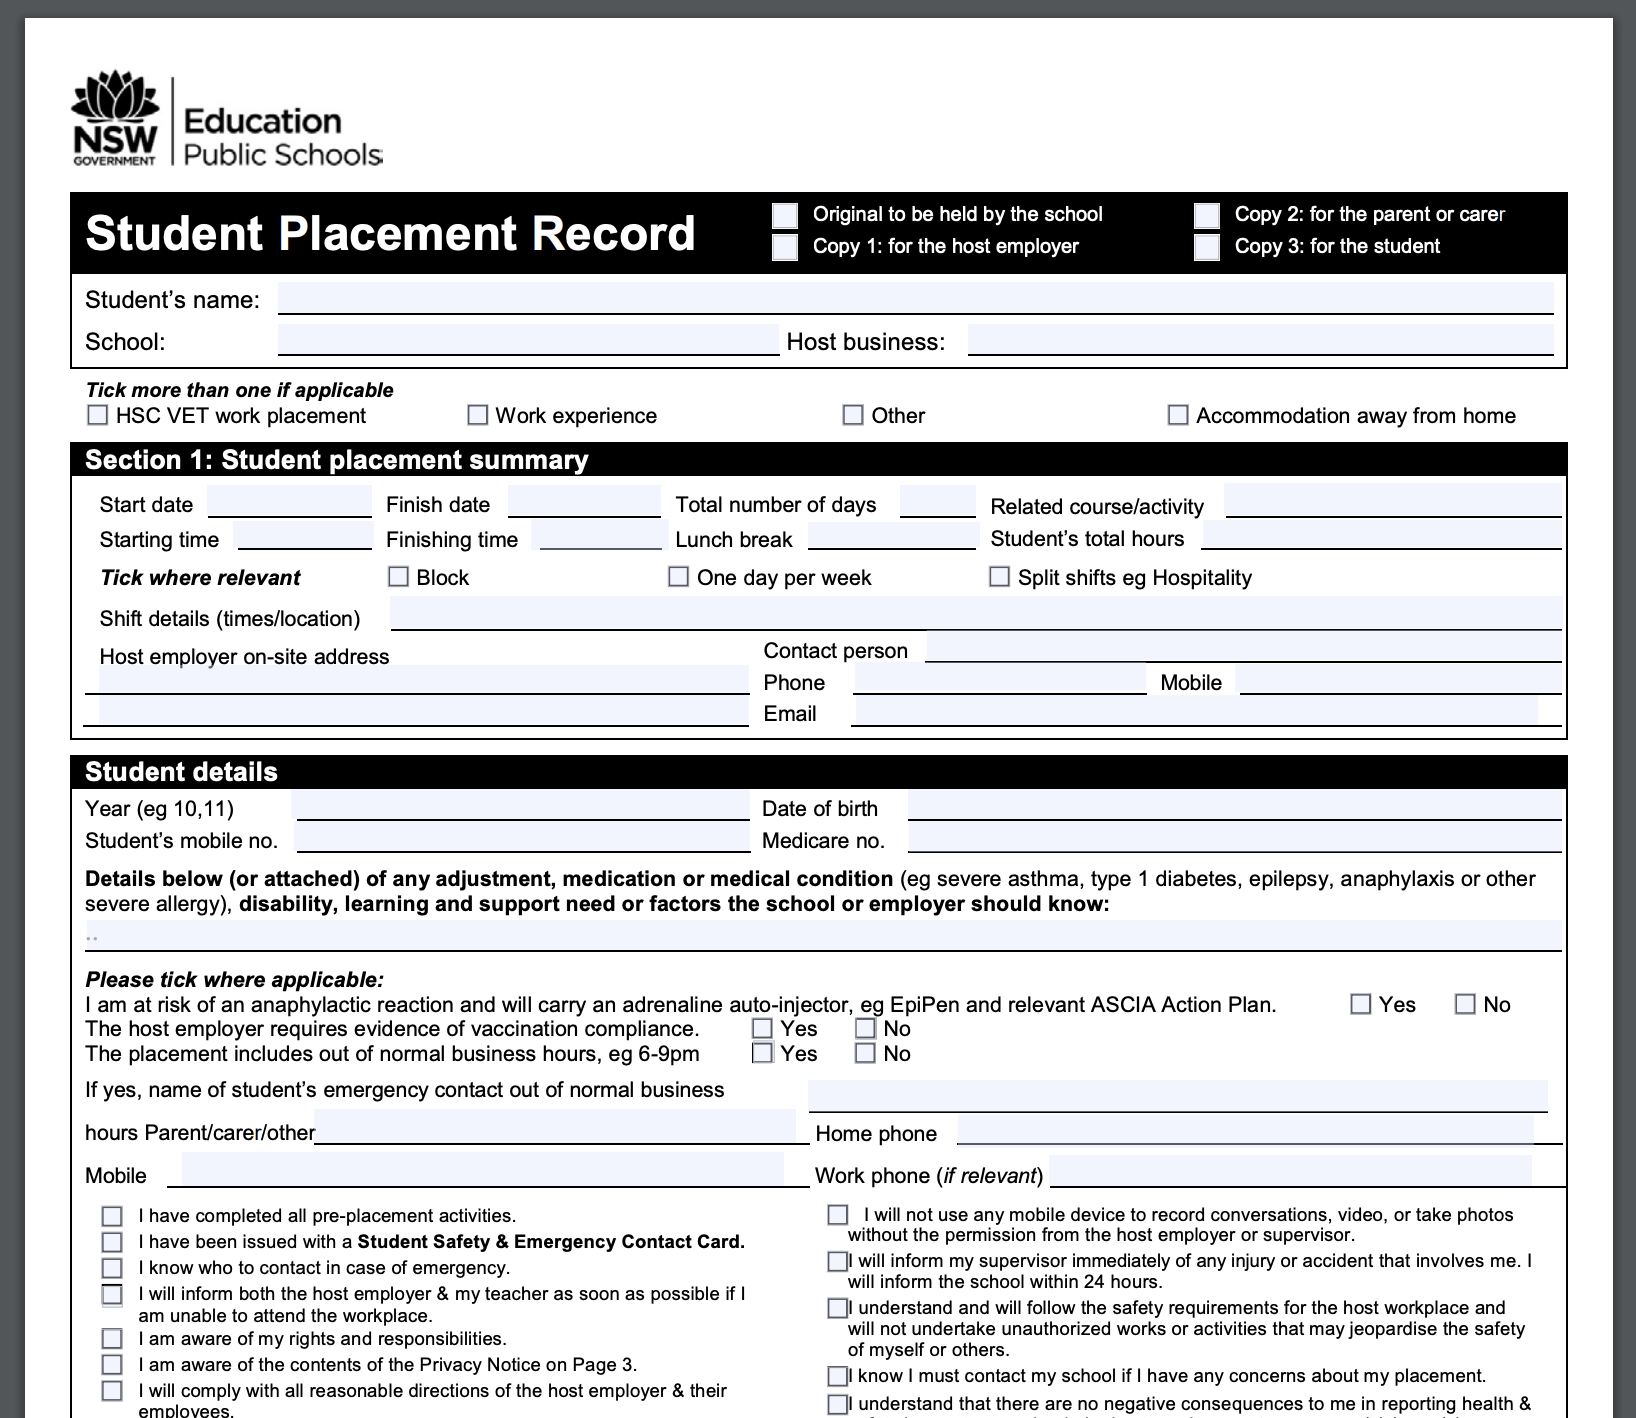 Pathways NSW Student Placement Record SPR